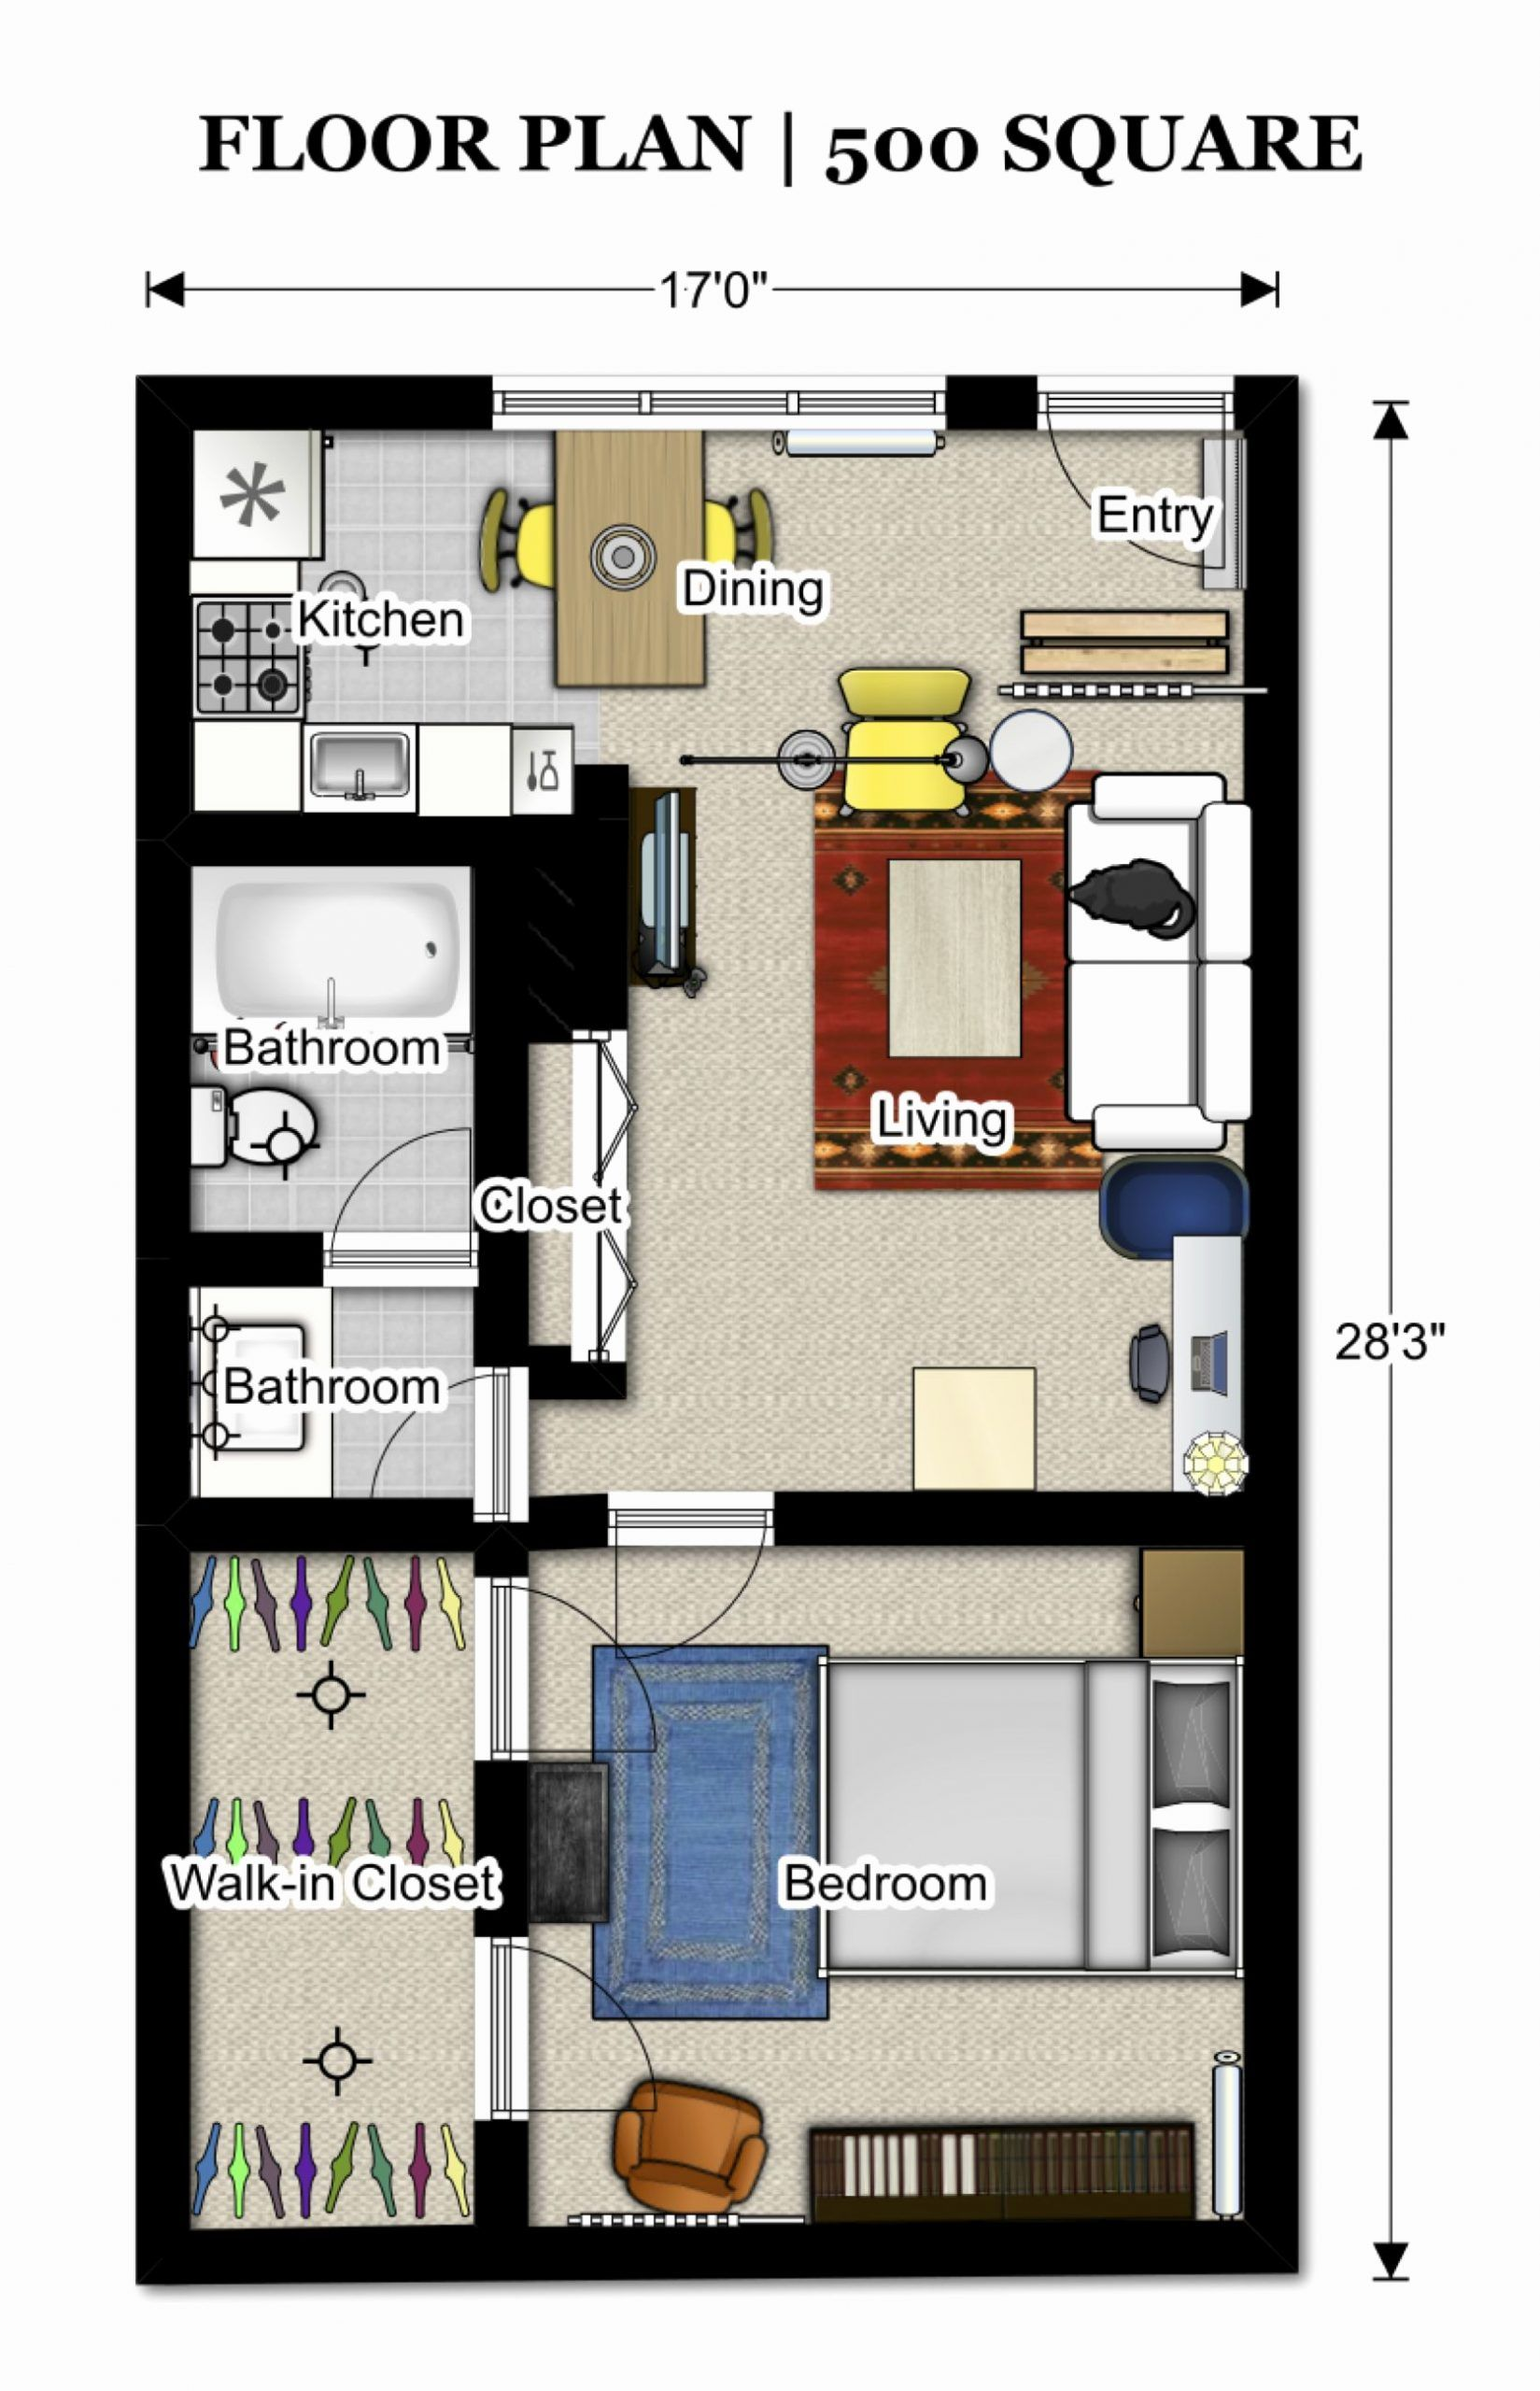 500 Sq Feet House Plans New 500 Square Feet Apartment Floor Plan Home Design Great Small House Floor Plans Apartment Floor Plans Studio Apartment Floor Plans